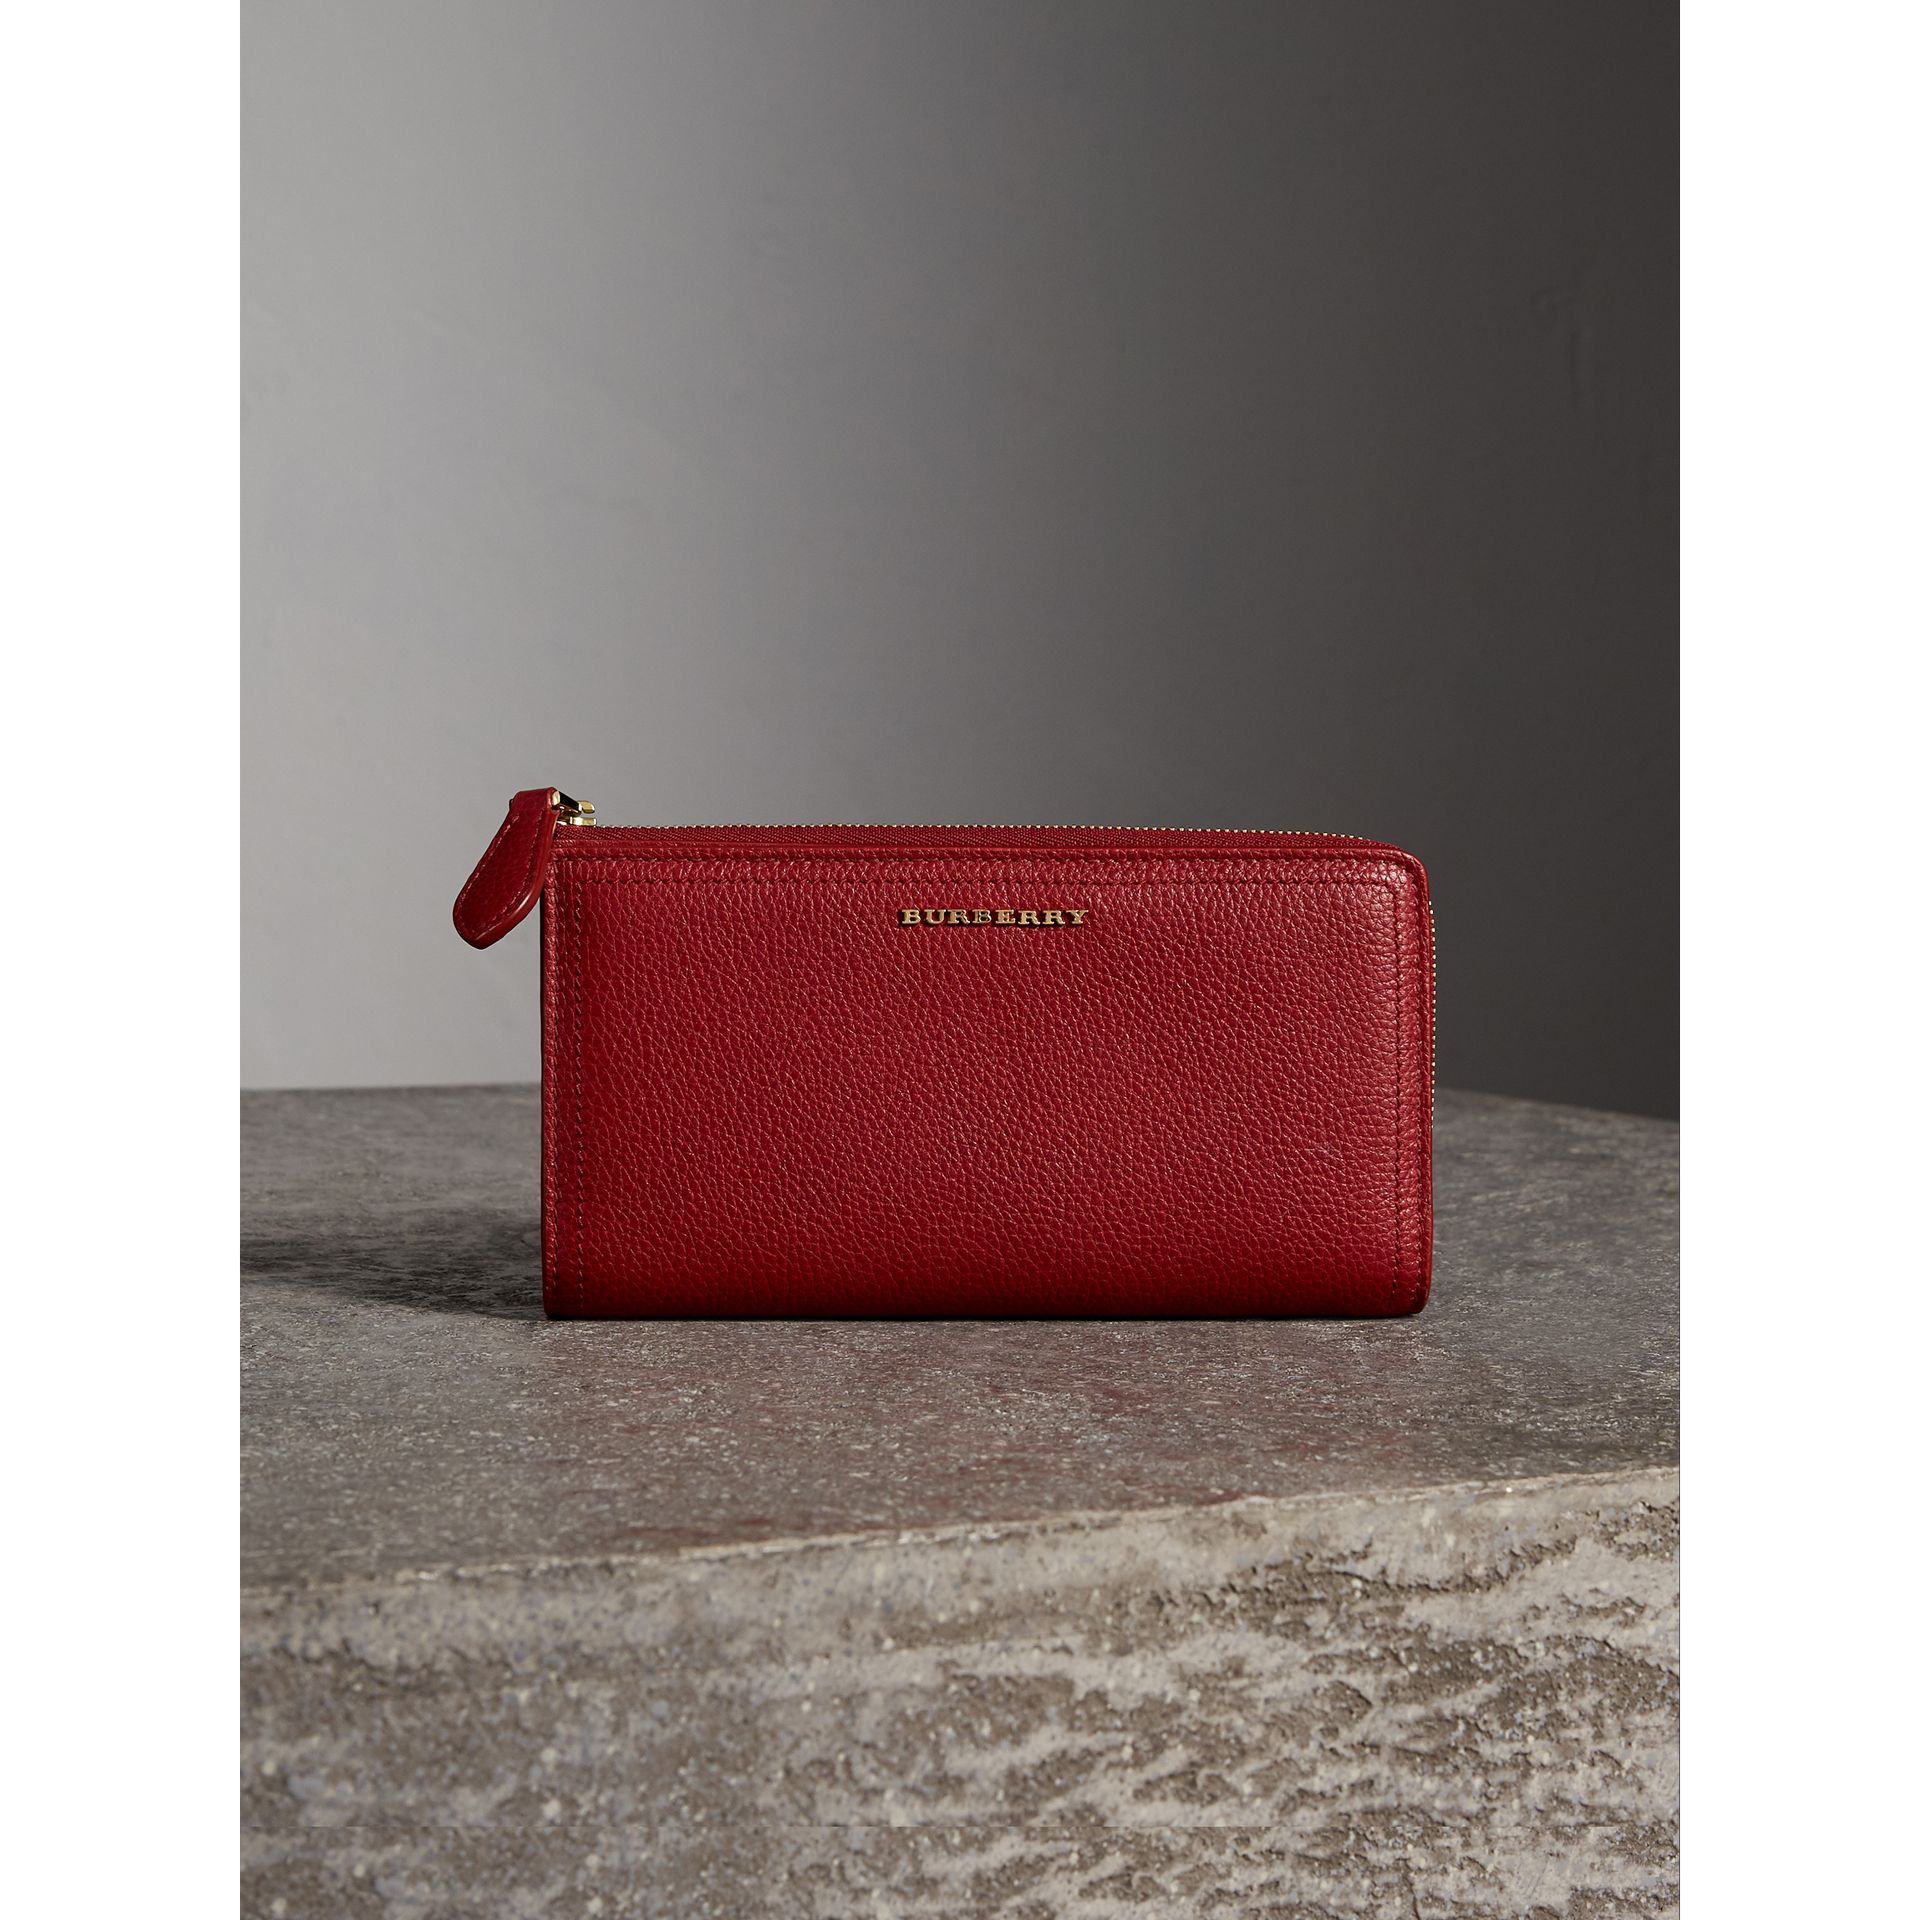 Grainy Leather Ziparound Wallet in Parade Red - Women | Burberry - gallery image 5